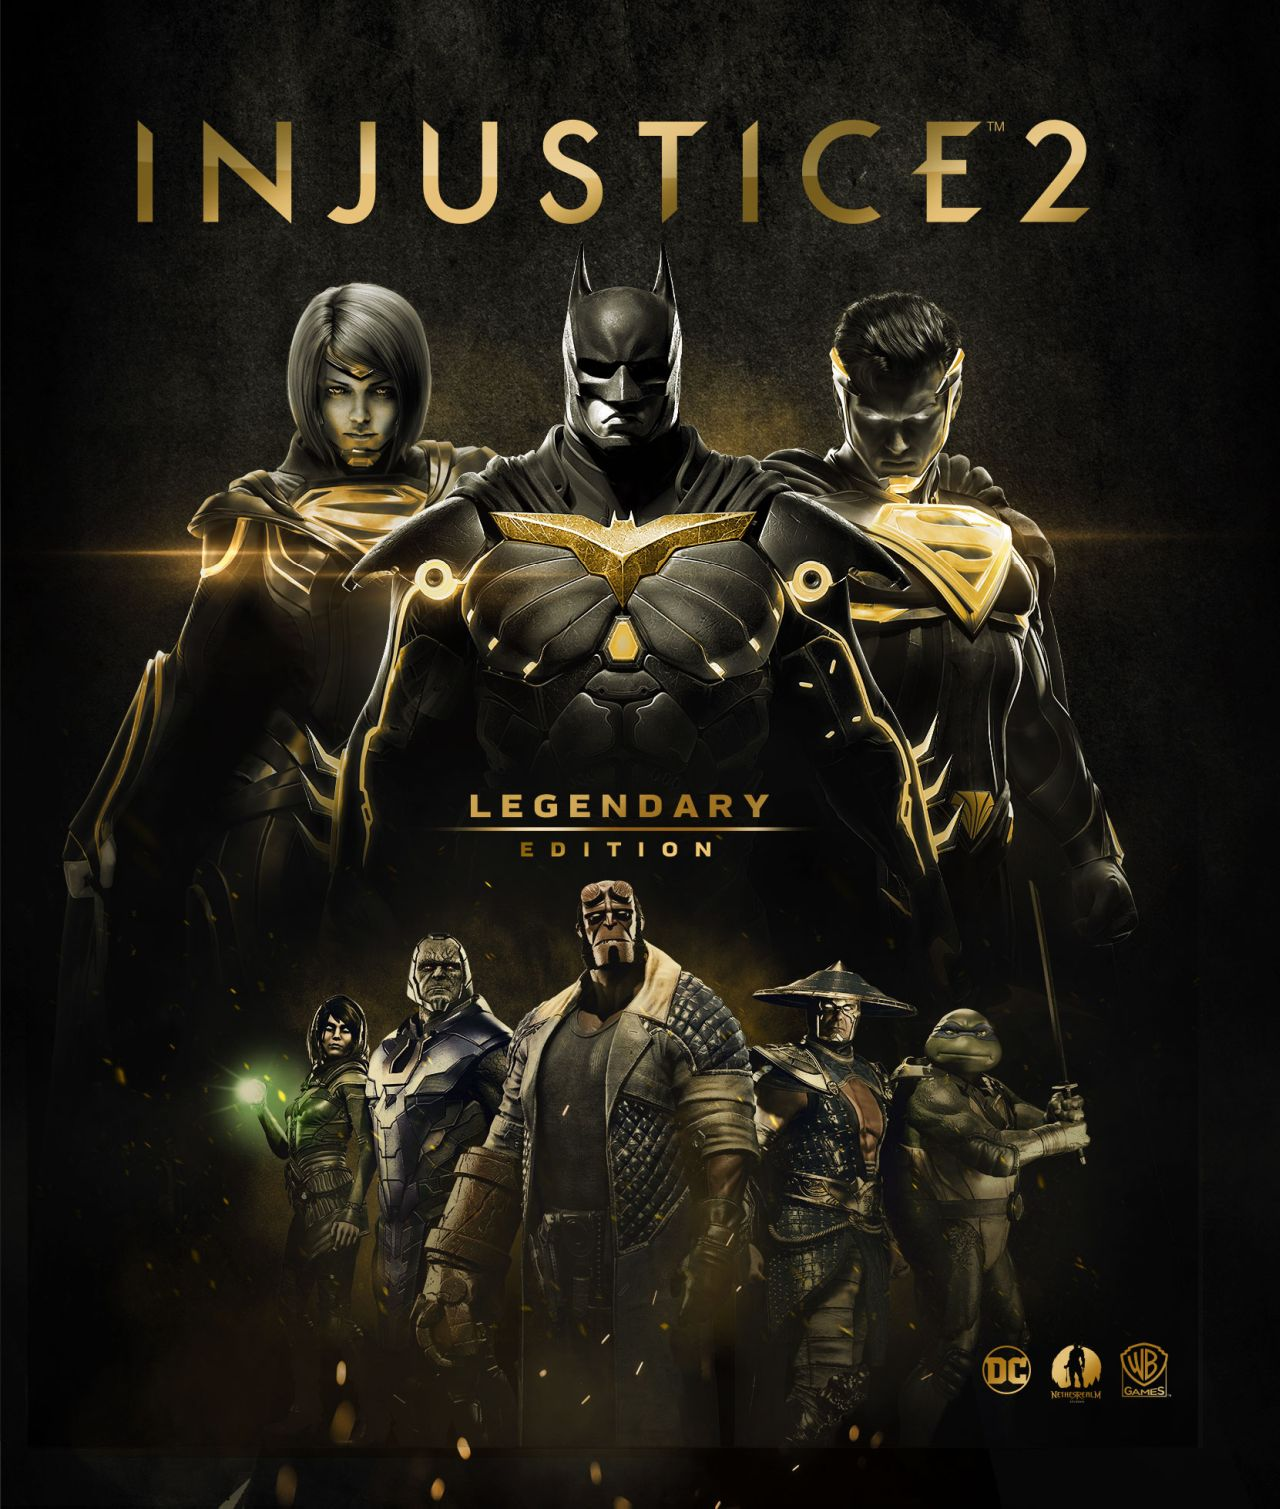 Injustice 2 - Release-Termin der Legendary Edition